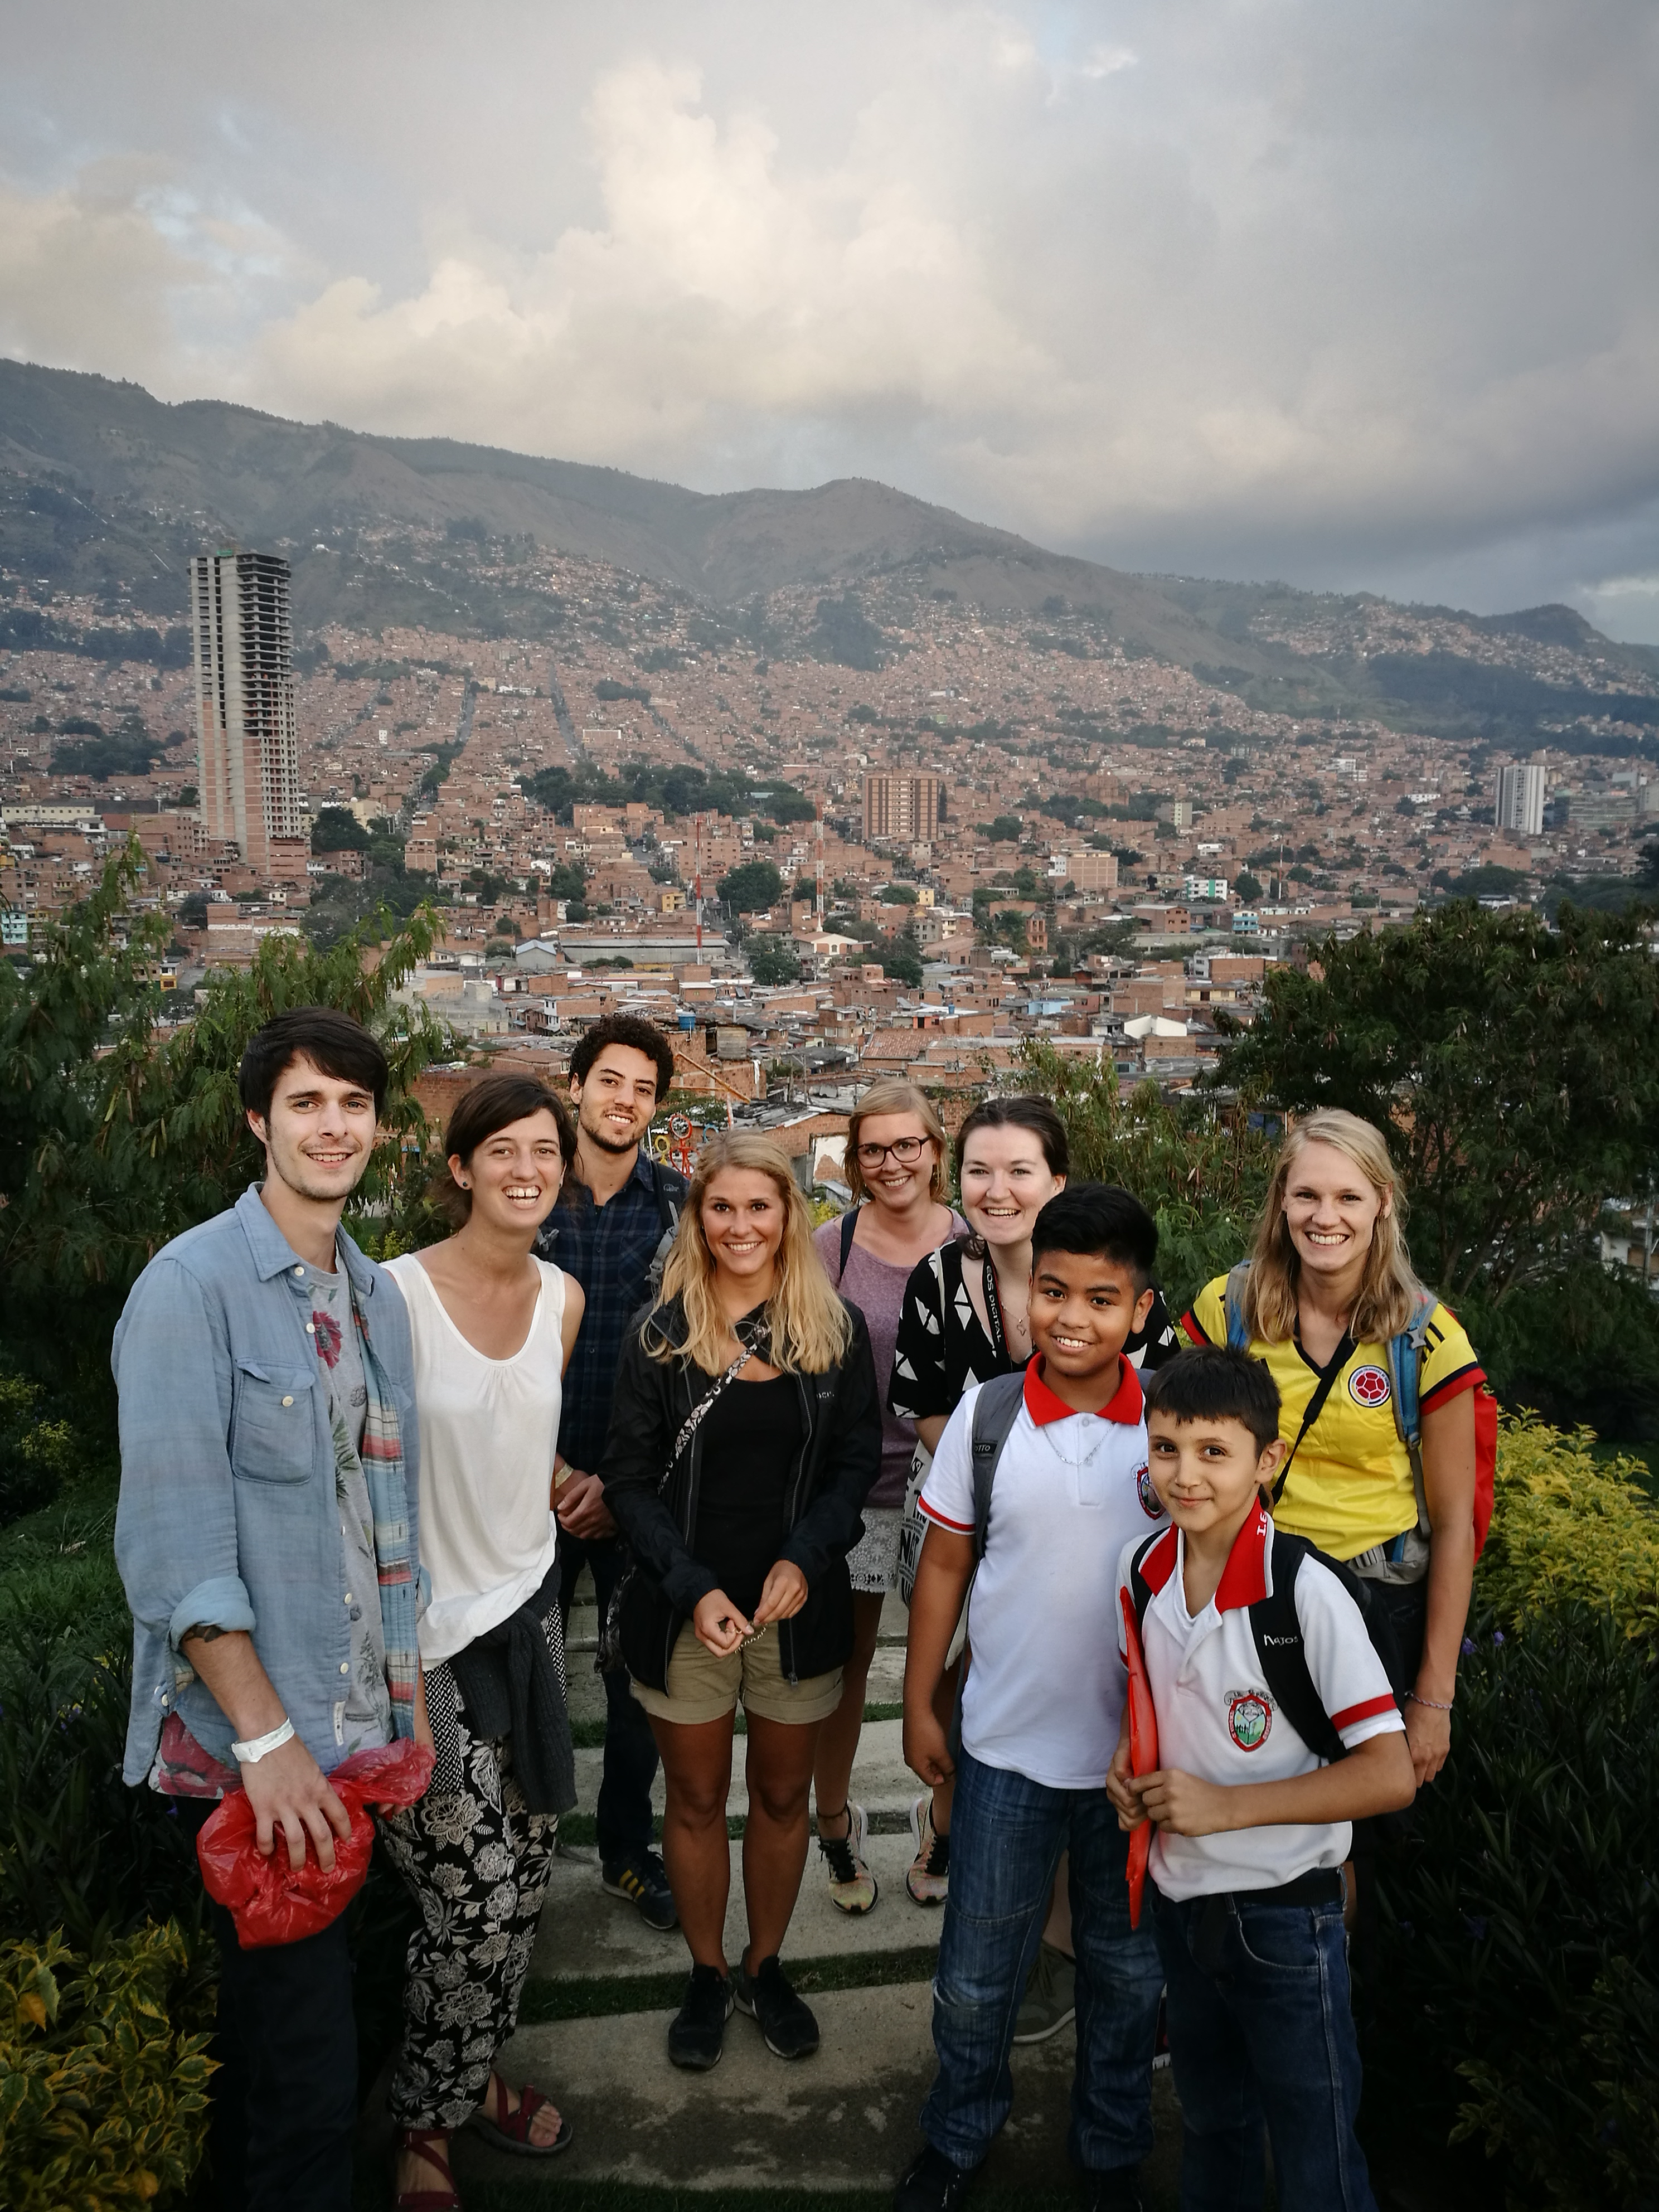 medellin city view from the hills real city tours medellin